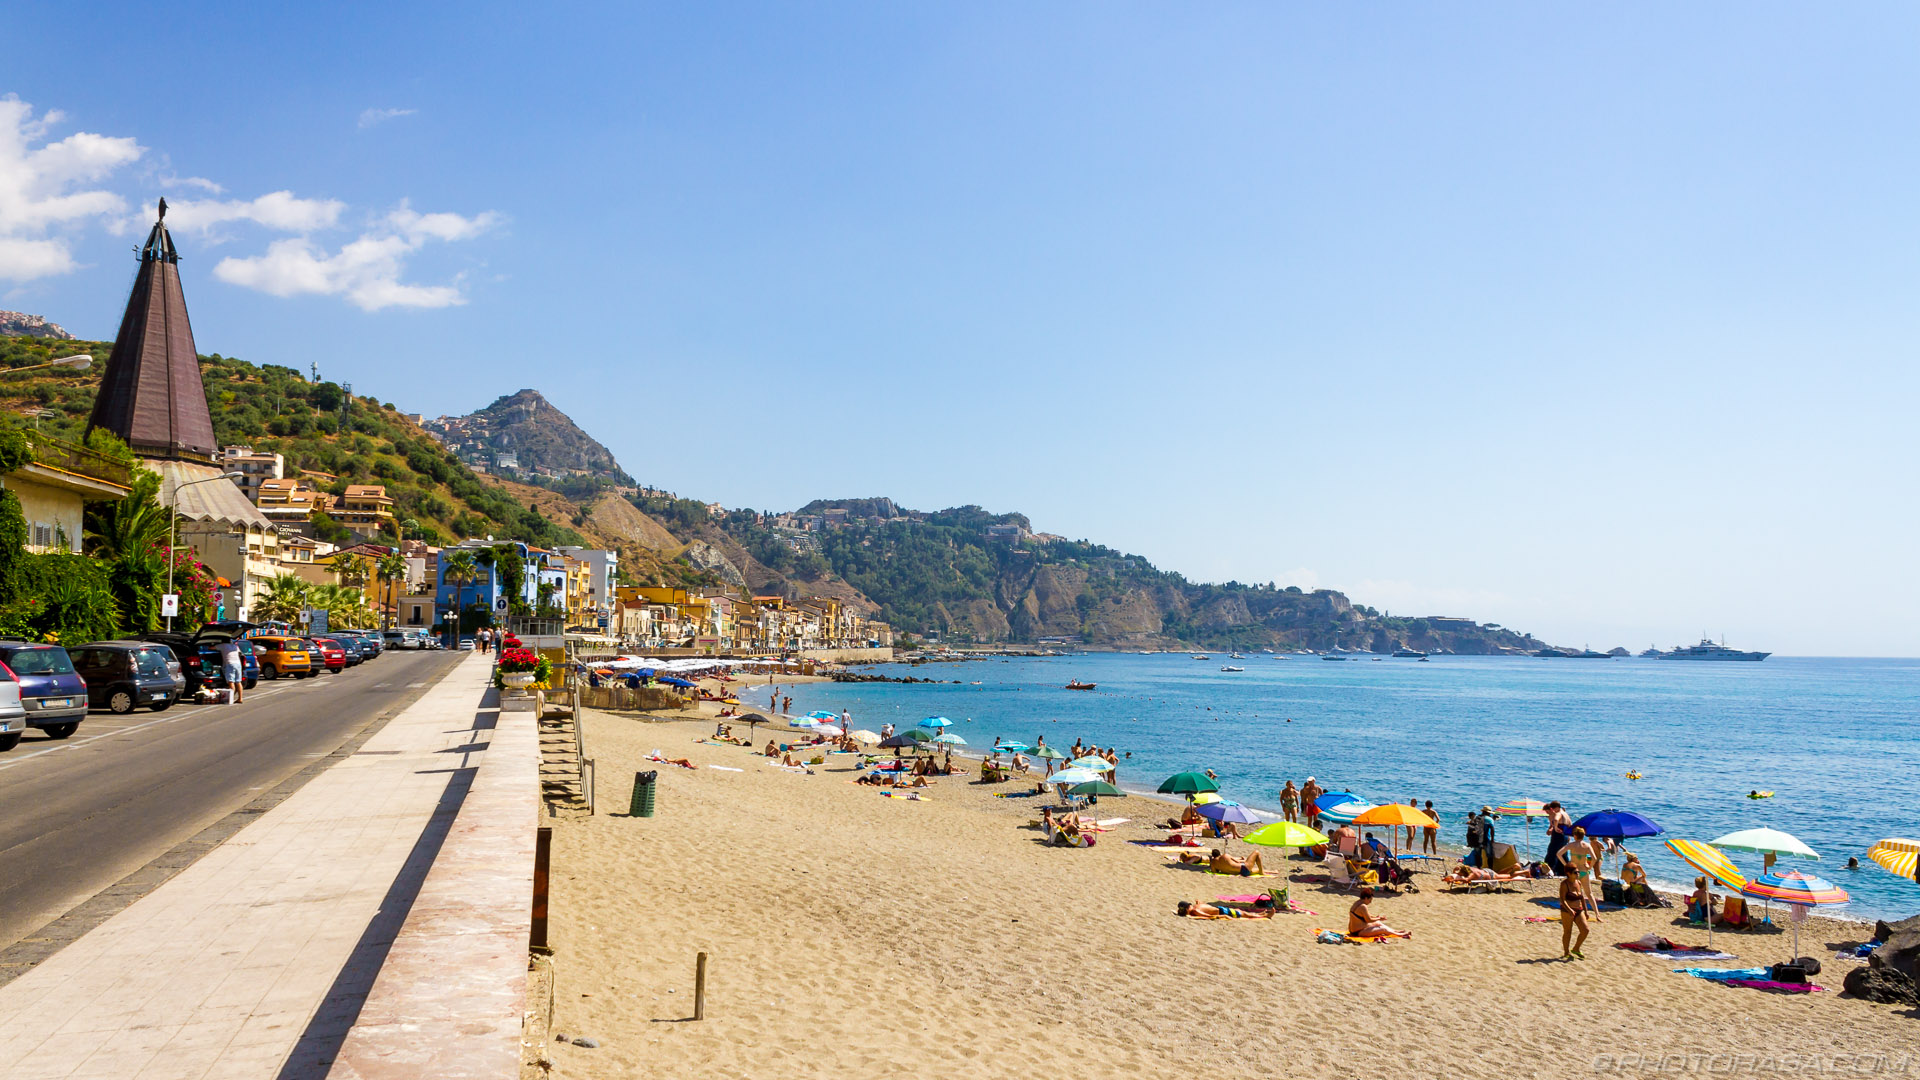 http://photorasa.com/places/giardini-naxos/attachment/giardini-naxos-beach/